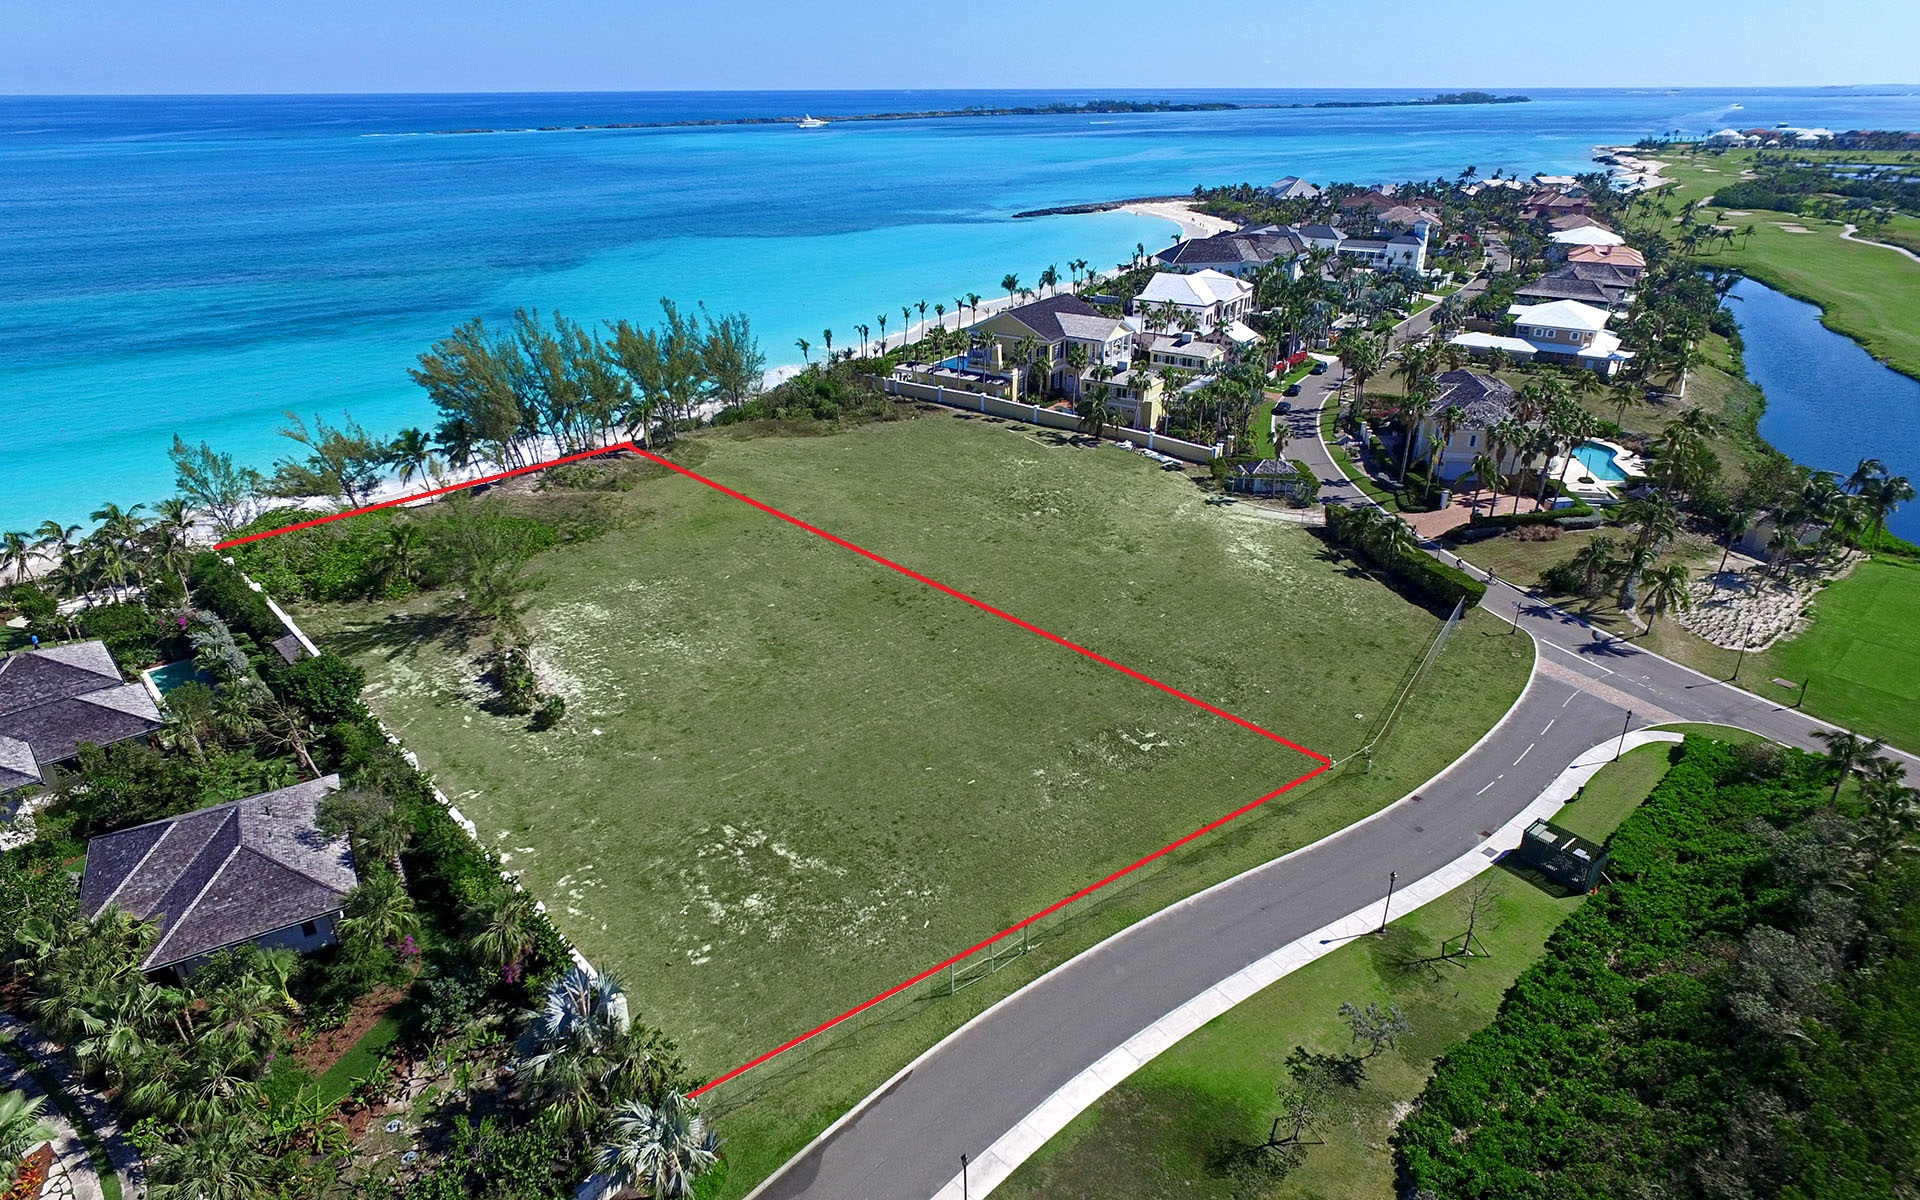 Land for Sale at Prime Beachfront Lot in Ocean Club Estates - MLS 29629 Ocean Club Estates, Paradise Island, Nassau And Paradise Island Bahamas